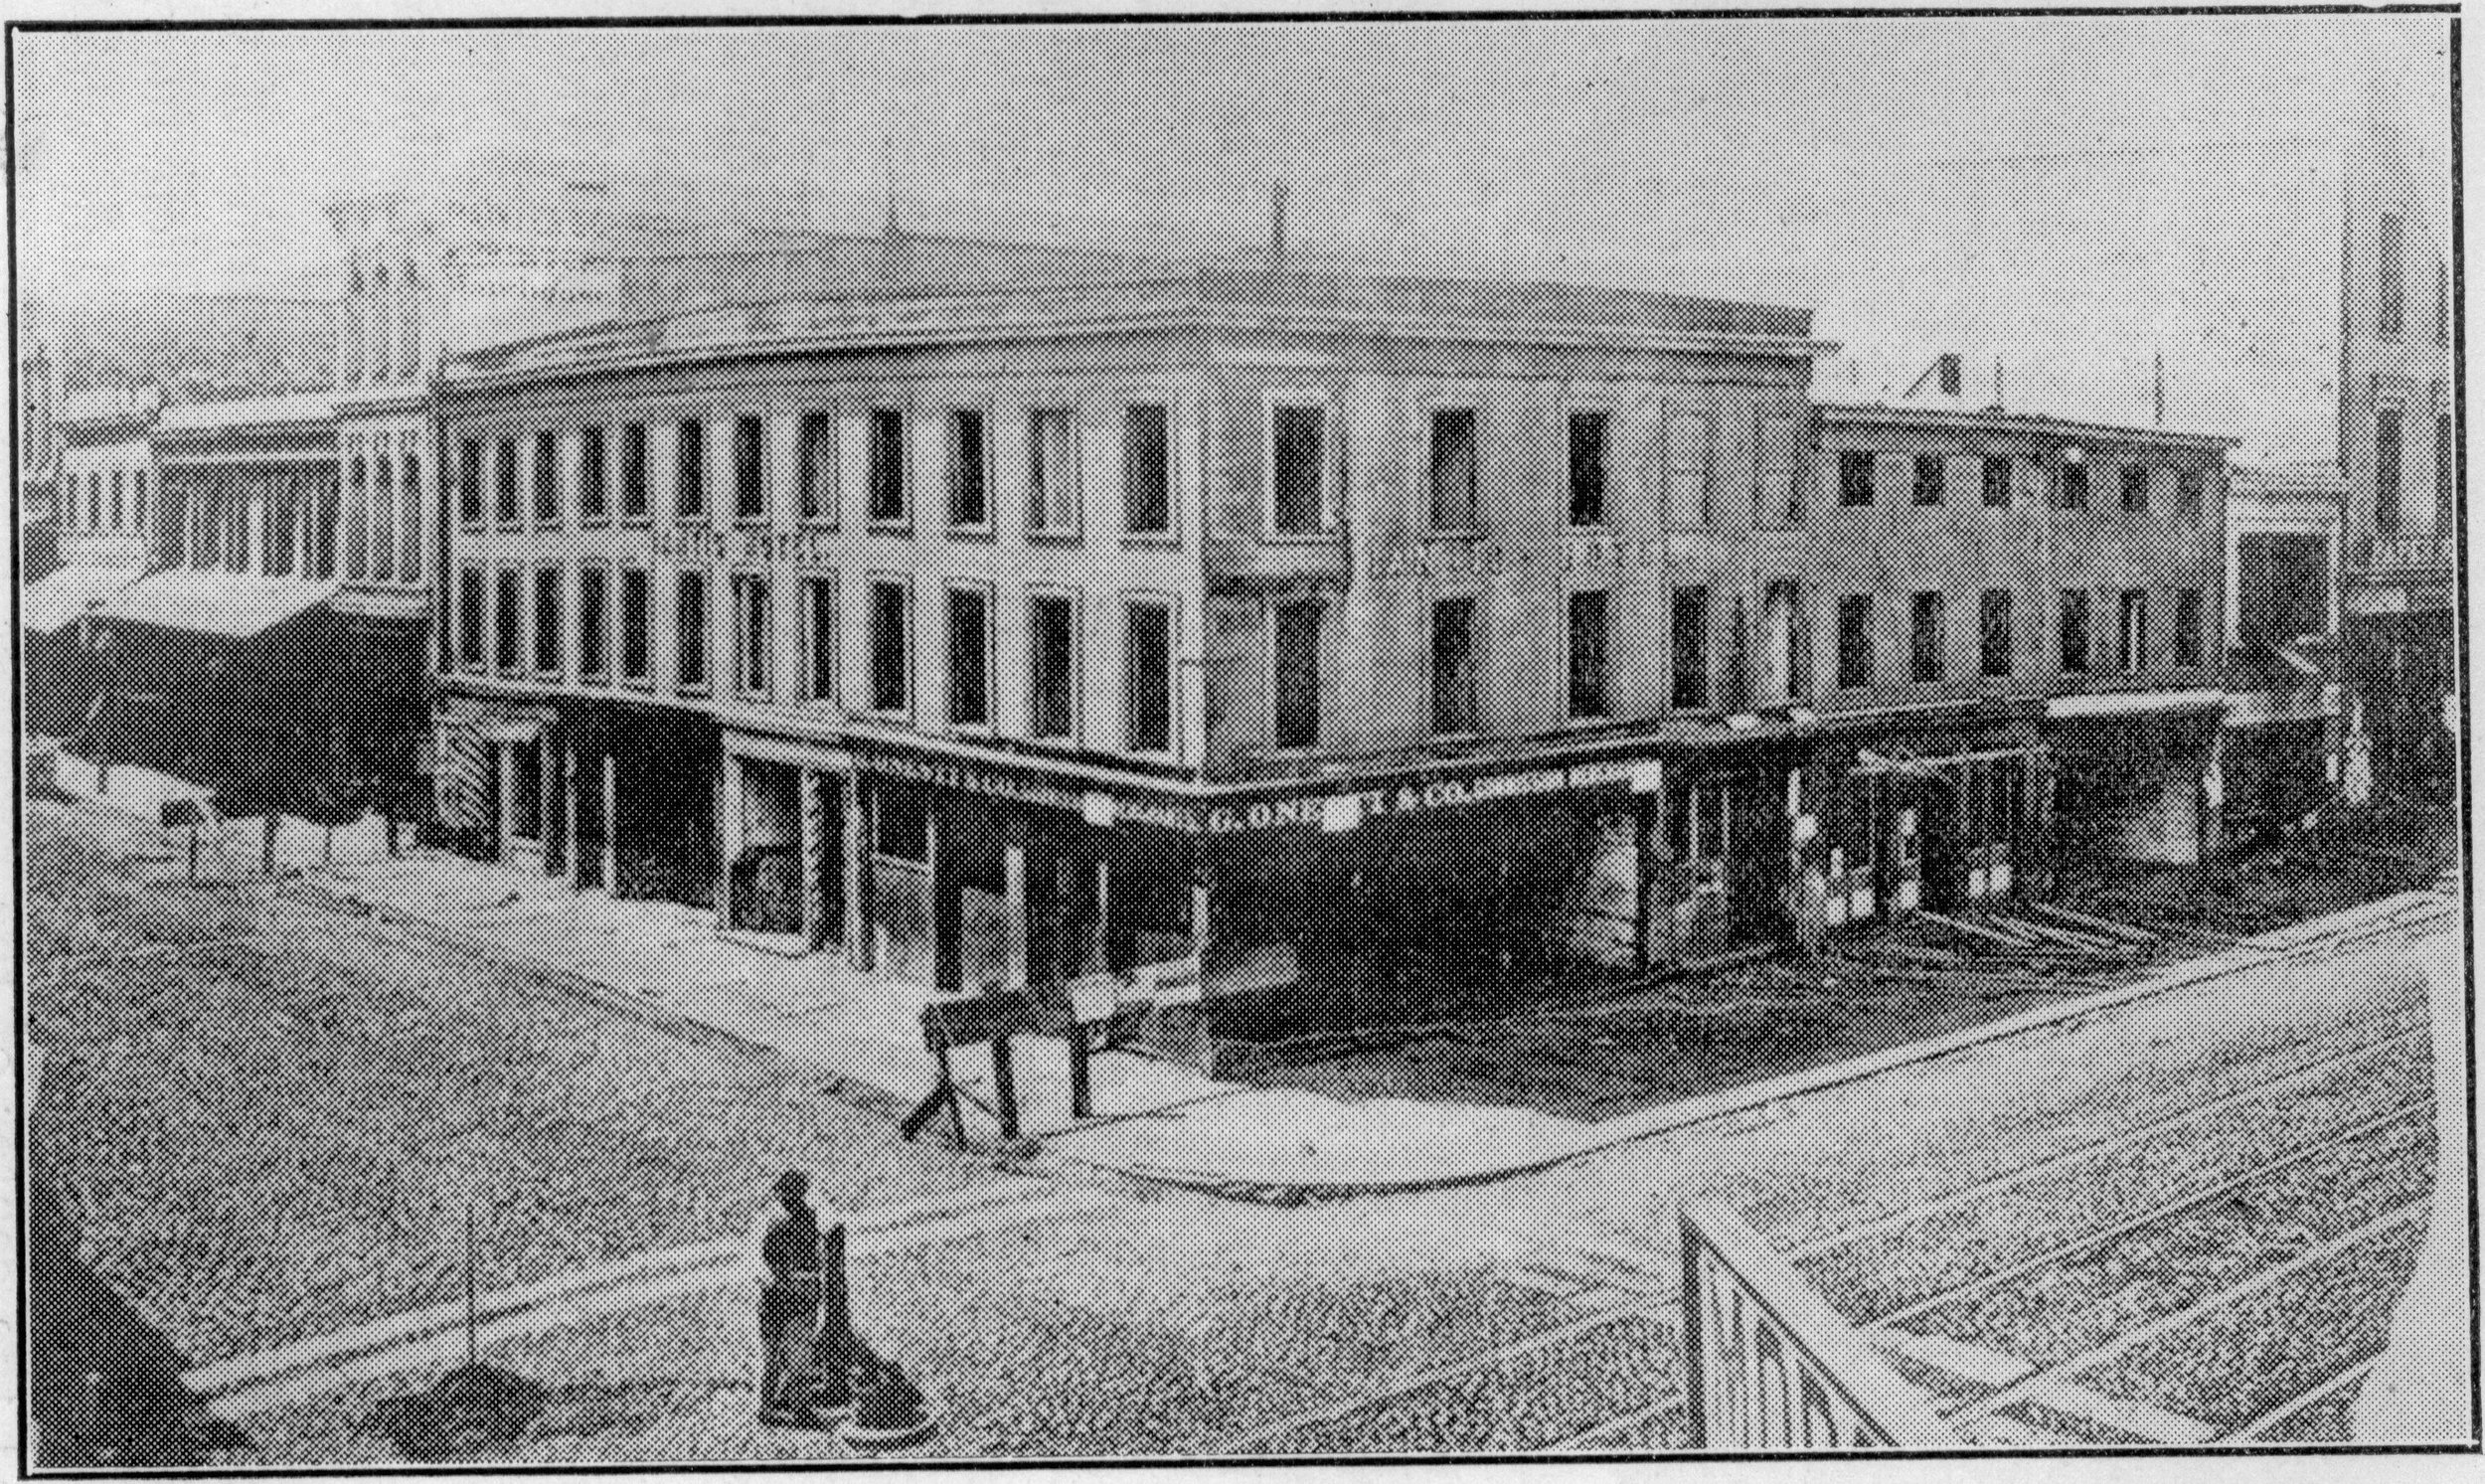 The second Niantic Hotel, at the northwest corner of Sansome and Clay Streets, San Francisco; possibly dated 1865. Both the printing firm of Cuddy & Hughes and the  Pacific Appeal  newspaper operated out of the building visible at the far right:511 Sansome, at the southwest corner of Sansome and Merchant. Photograph from the collection of  James R. Smith . Scan provided courtesy of the owner. (A large detail from this photo appears in Smith's 2005 book,   San Francisco's Lost Landmarks  .)